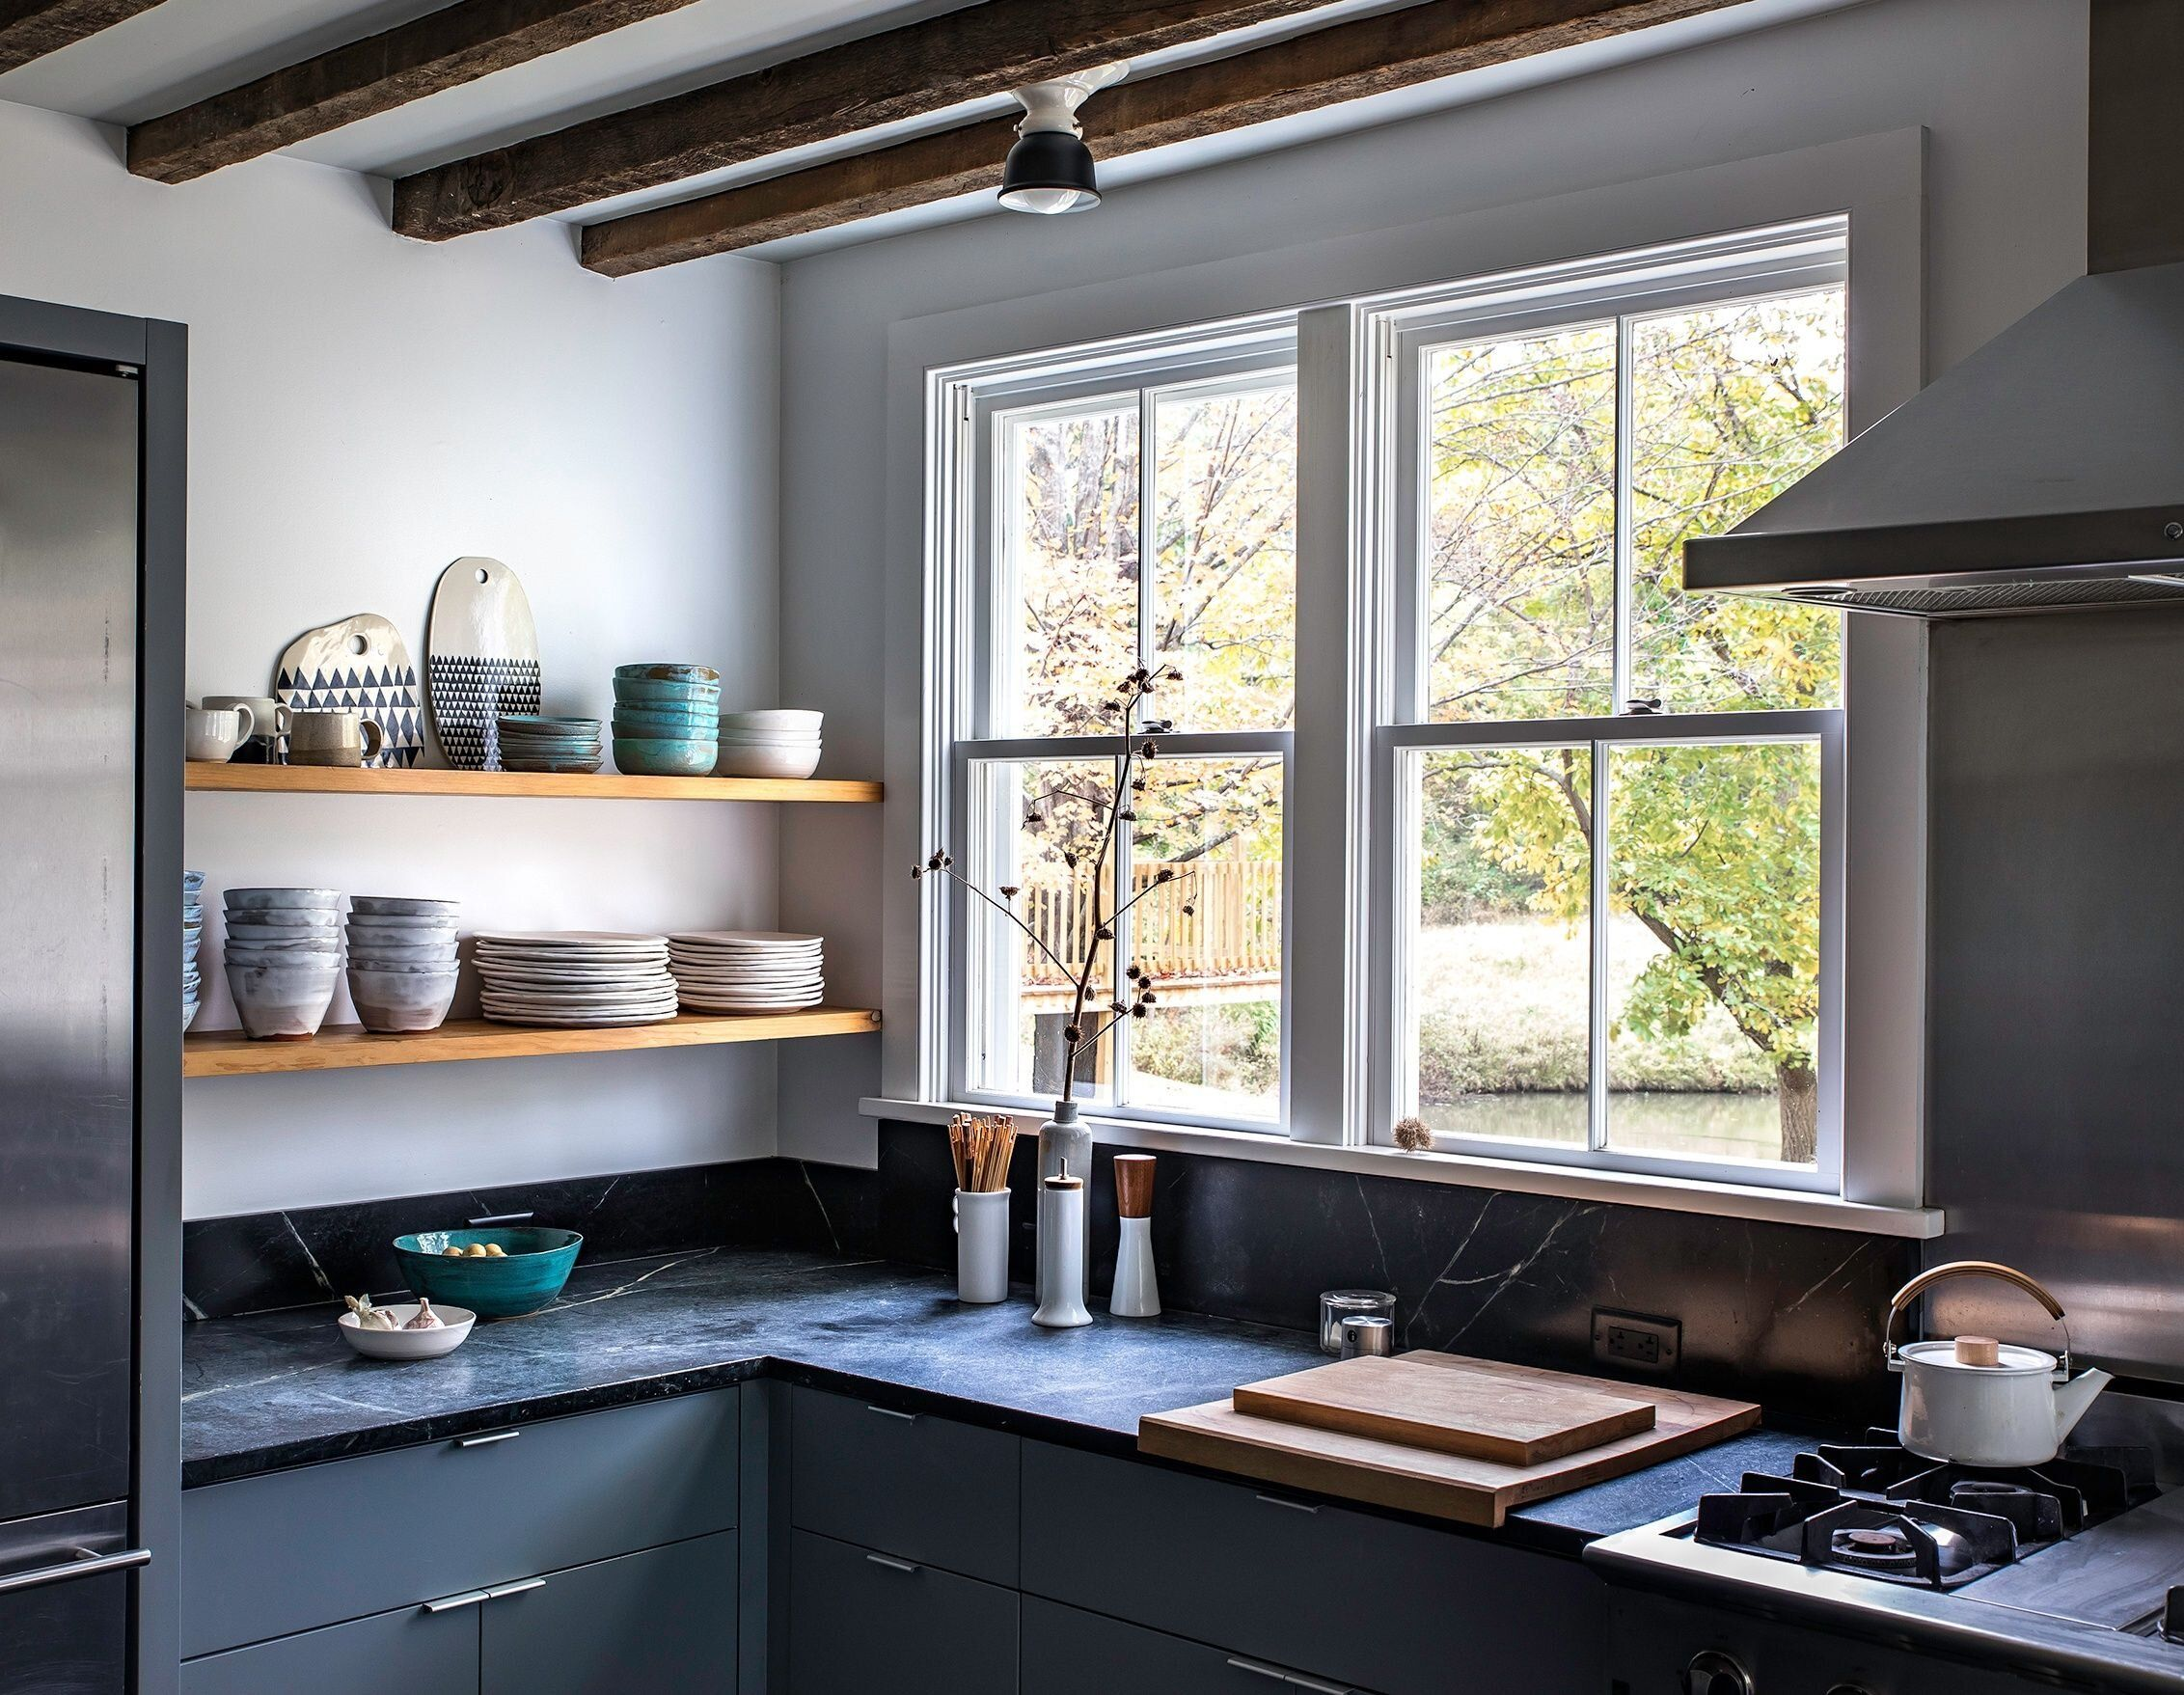 How To Choose The Right Countertops For Your New Kitchen Kitchen Remodel Kitchen Design Soapstone Counters